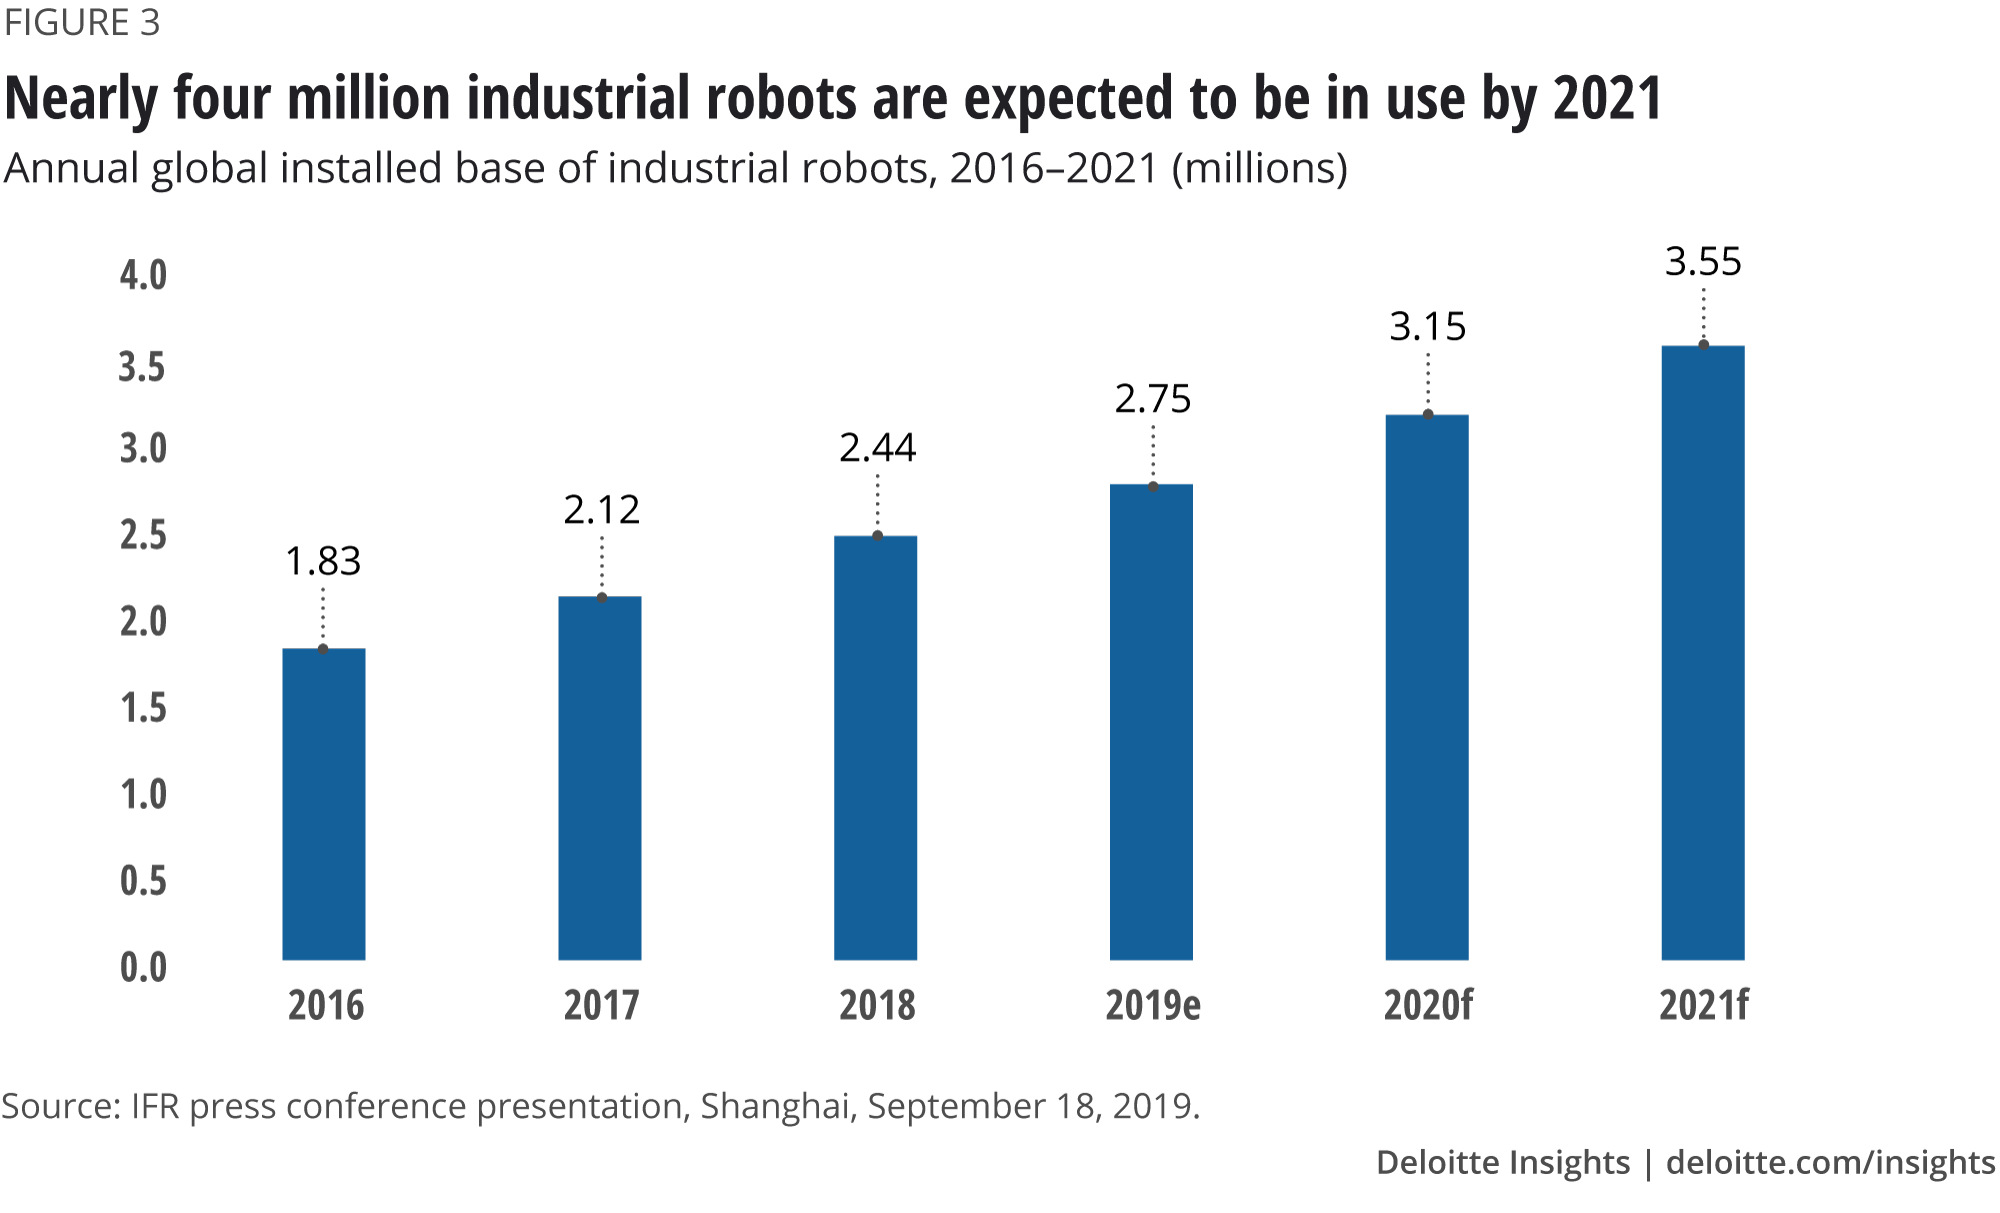 Nearly four million industrial robots are expected to be in use by 2021